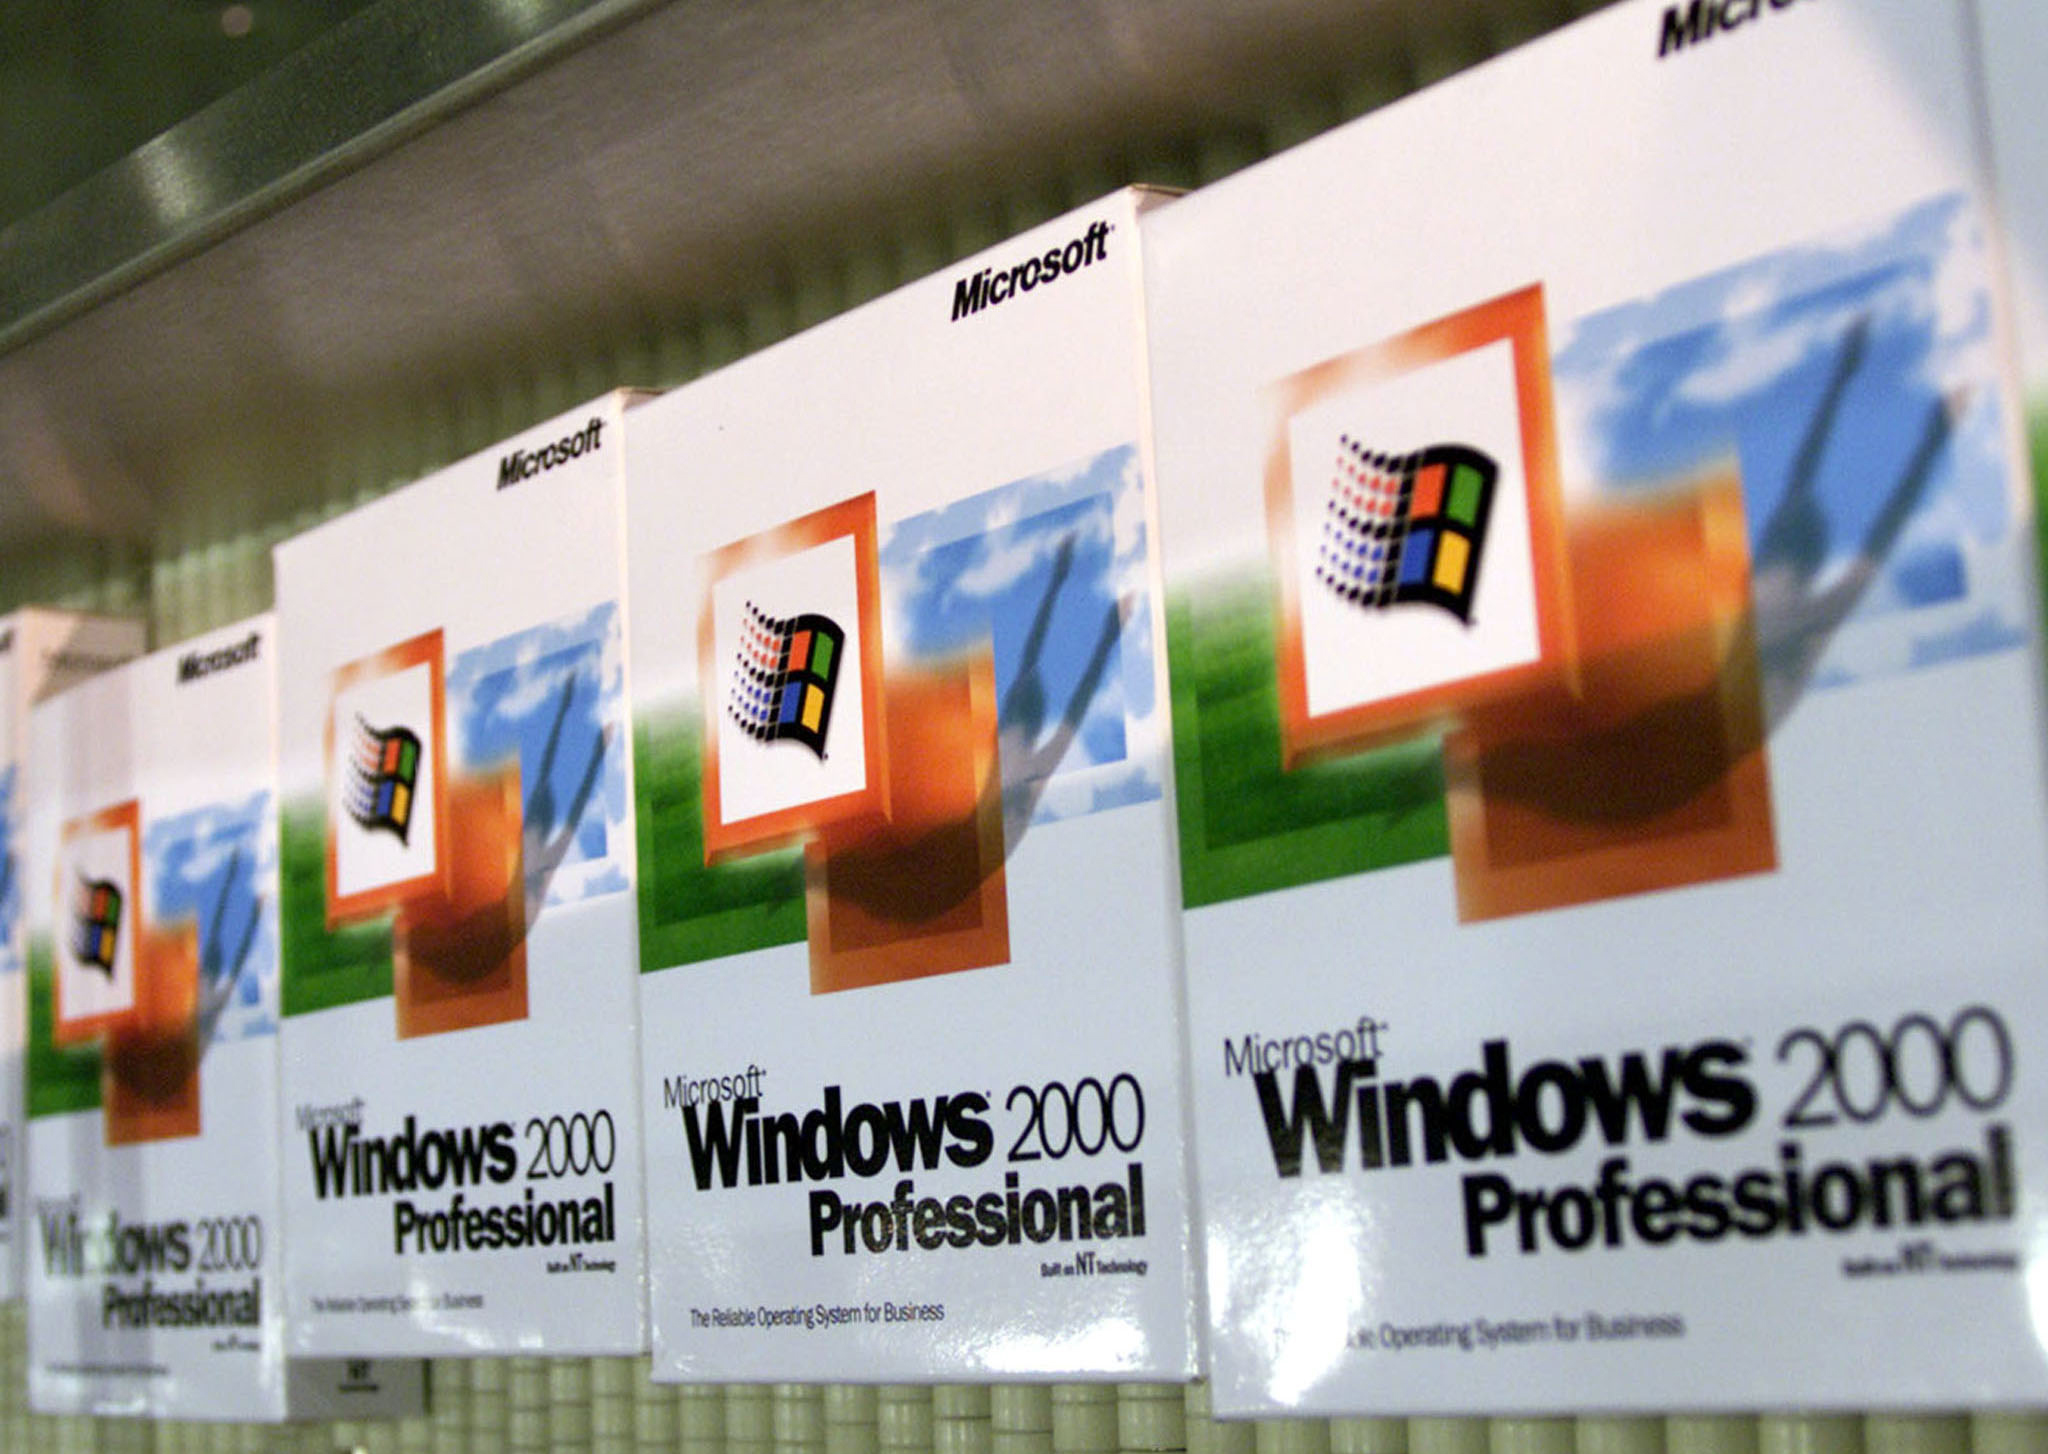 The First Copies Of Microsoft's Windows 2000 Roll Out On An Assembley Line